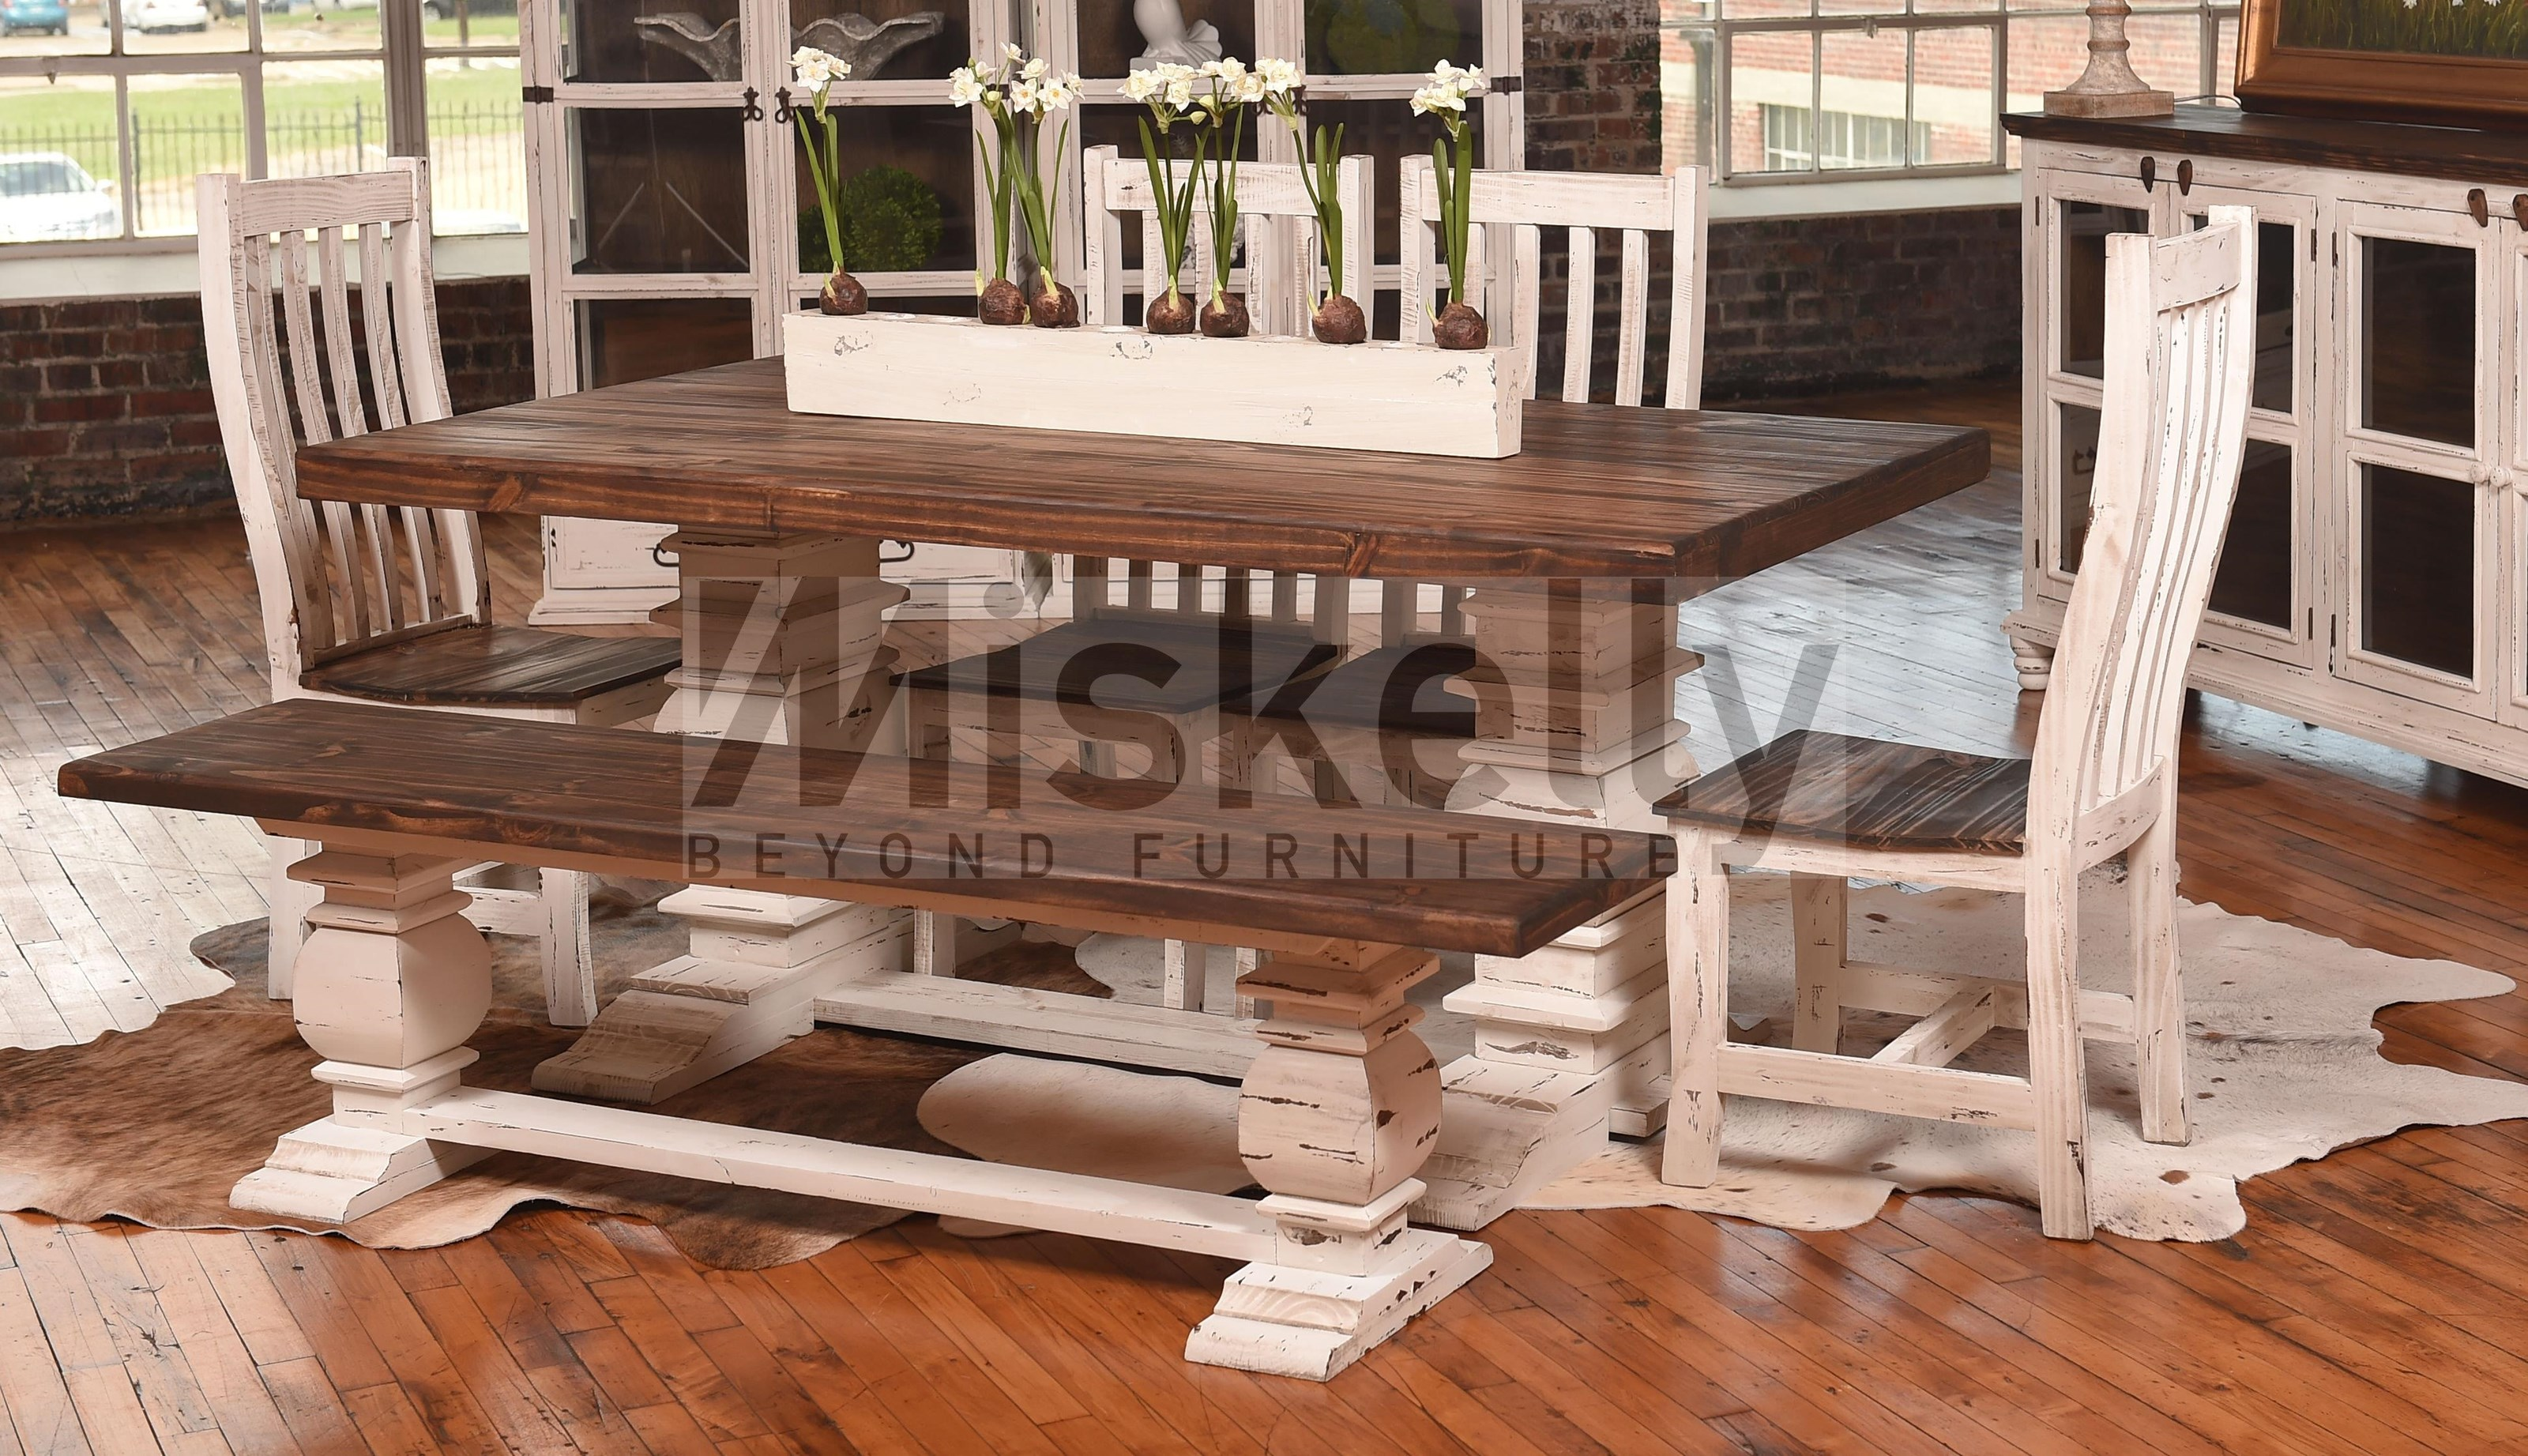 Mes2 White Solid Wood Table With 4 Chairs And Bench